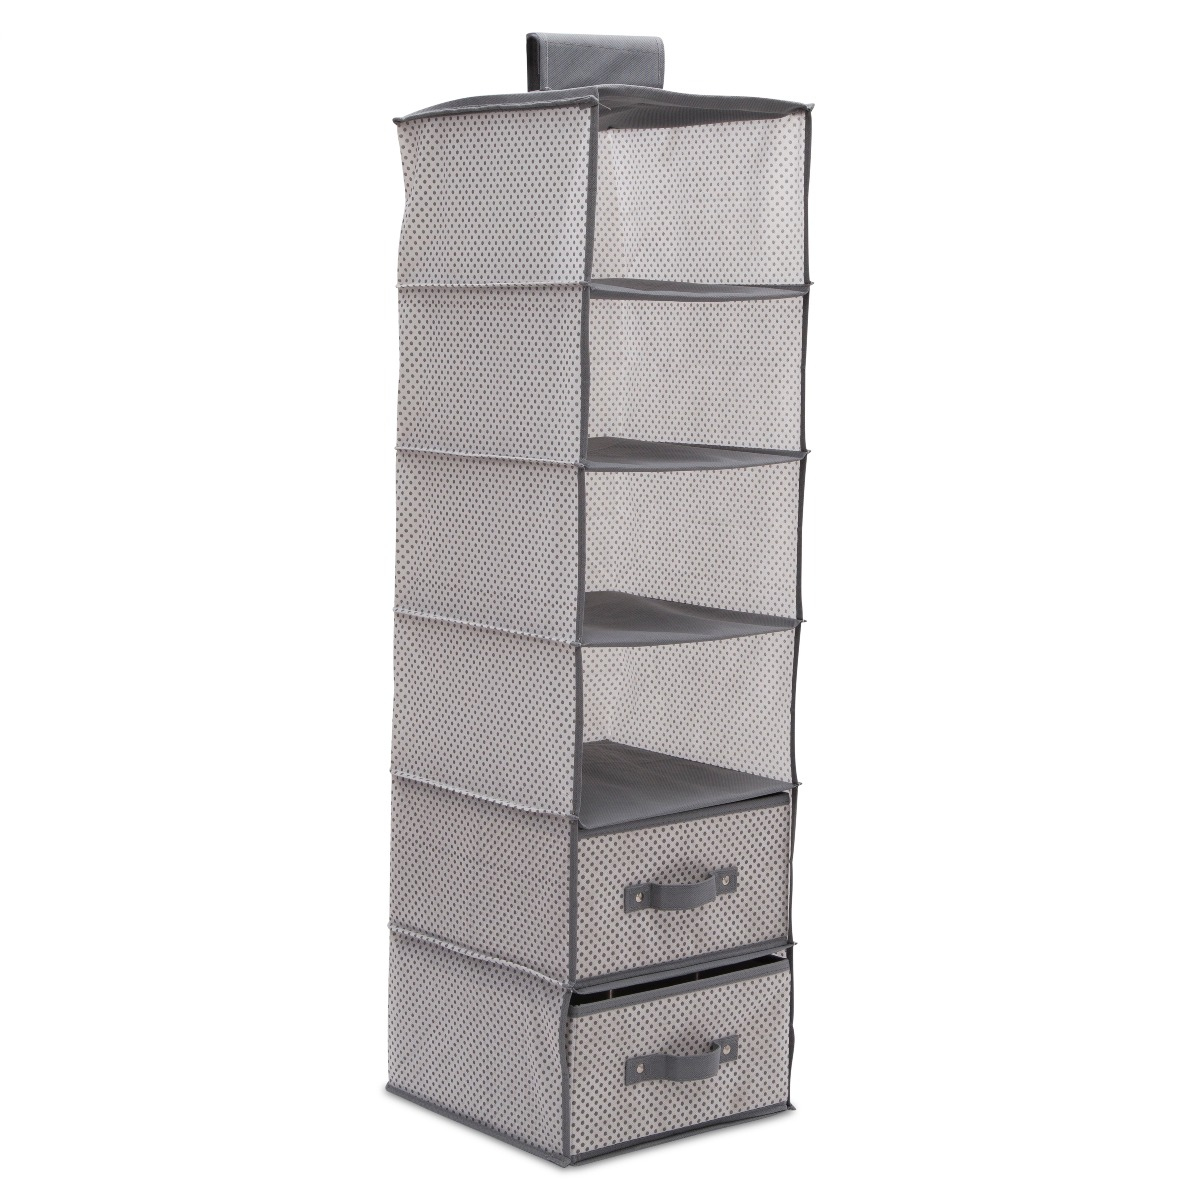 6 Shelf Storage with 2 Drawers - Cool Grey